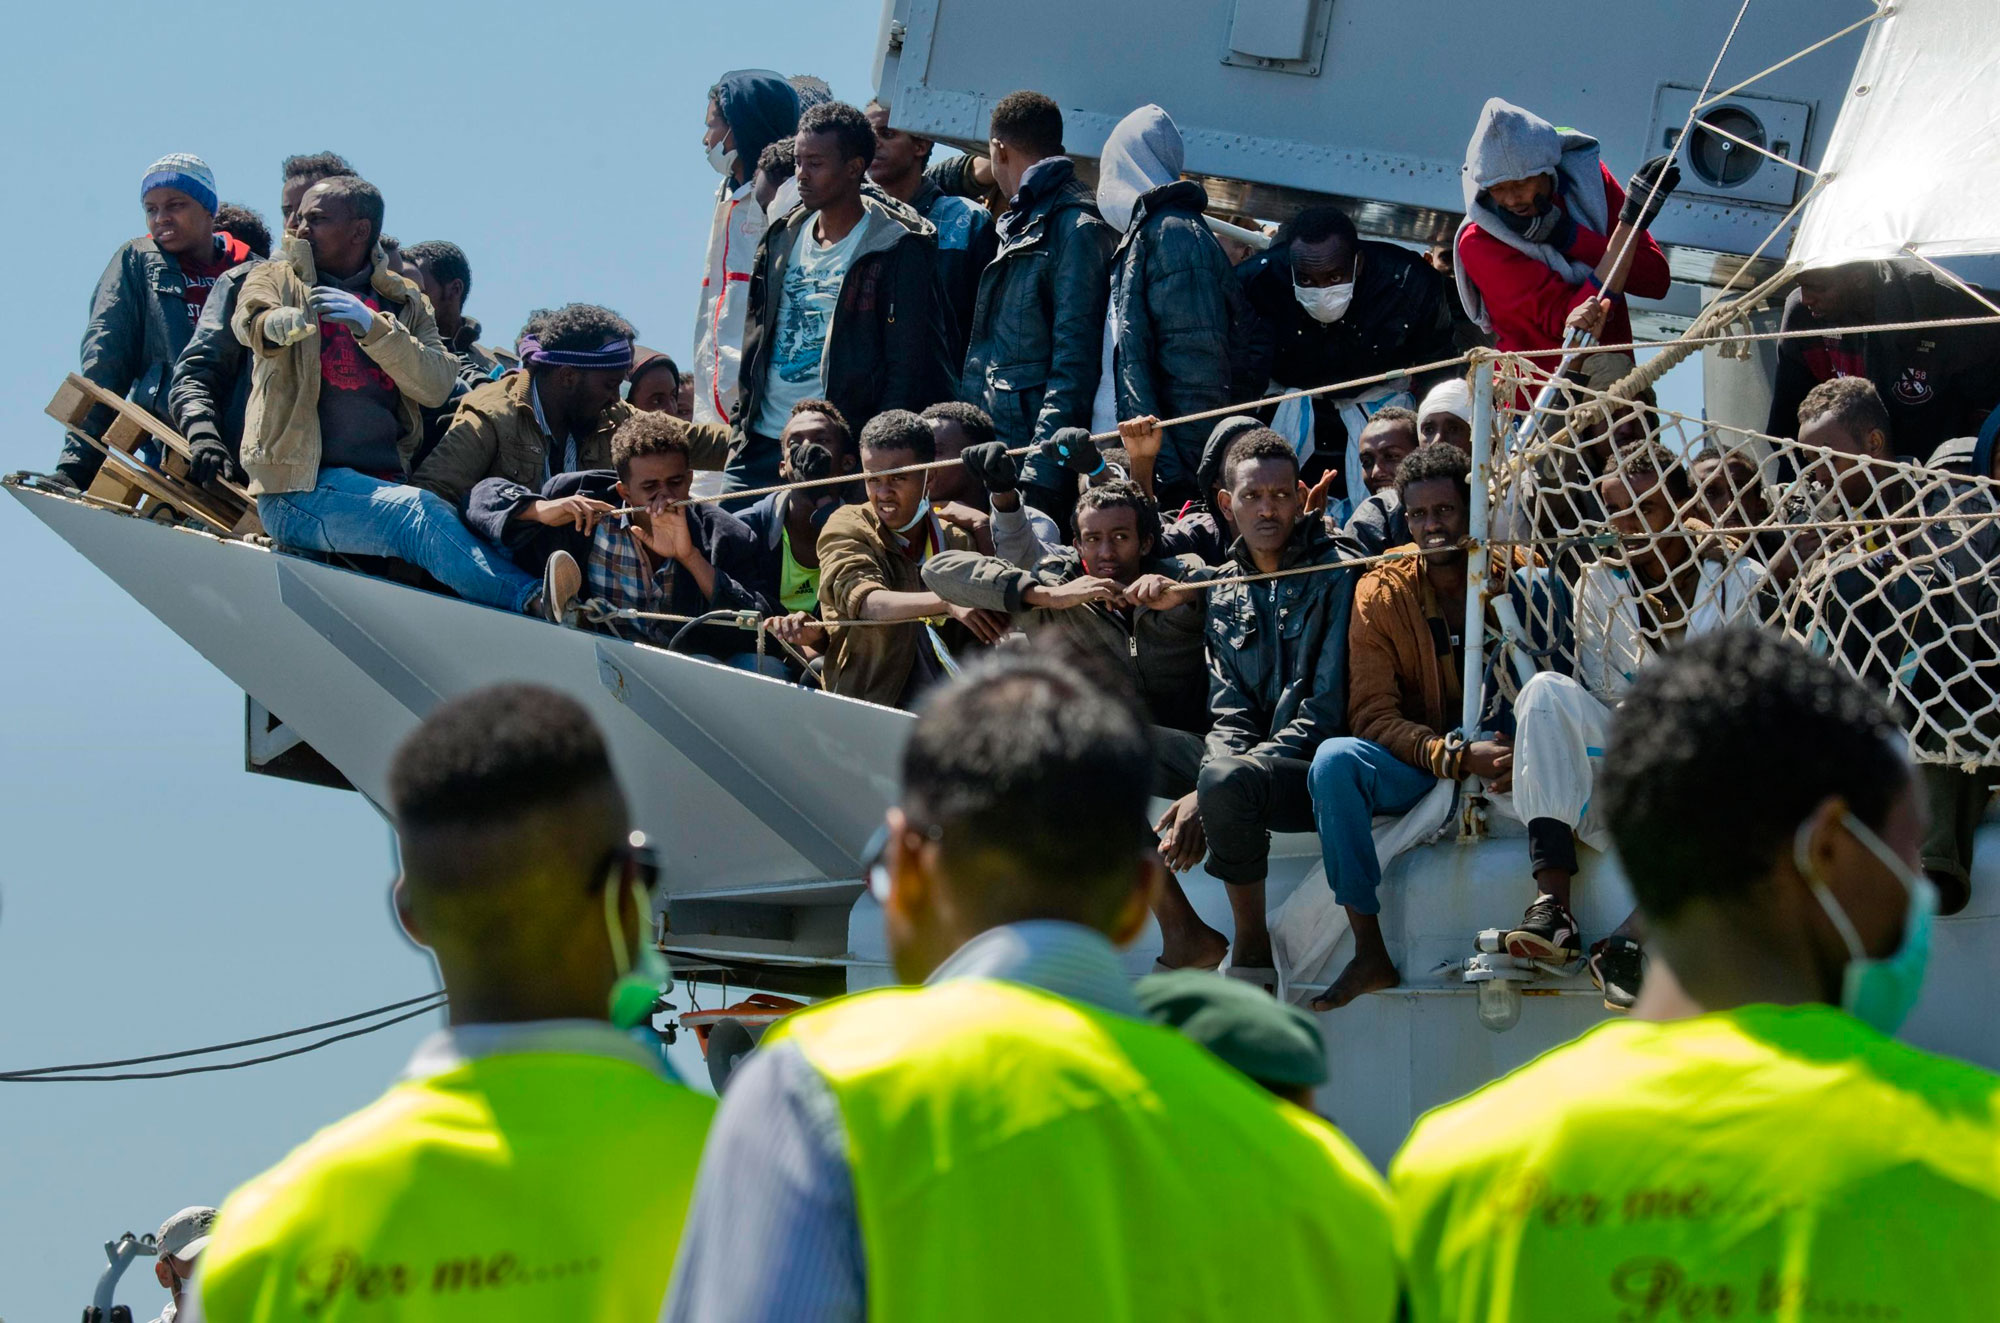 Some of a group of 545 migrants sit on the deck of the Italian navy 'Chimera' vessel while rescue workers gather in front of it as the vessel arrives in Salerno, Italy, 22 April 2015. Of these migrants, about fifty will remain in Campania region, the others will be transferred in Piemonte, Lombardia, Liguria, Veneto, Emilia Romagna, Lazio and Calabria regions. More than 600 would-be asylum seekers reached Italy's shores early 22 April, days after a deadly Mediterranean shipwreck, while top officials from the European Union and African Union were due to discuss migration at talks in Brussels. The Italian navy wrote on Twitter that 446 migrants who were rescued Tuesday some 150 kilometers south-east of the coast of the southern region of Calabria were disembarked in Augusta, Sicily. A further 112 migrants, picked up by the coast guard late on Tuesday from a sinking dinghy at about 90 kilometers north-east of Tripoli, reached the island of Lampedusa, Italy's southern outpost.